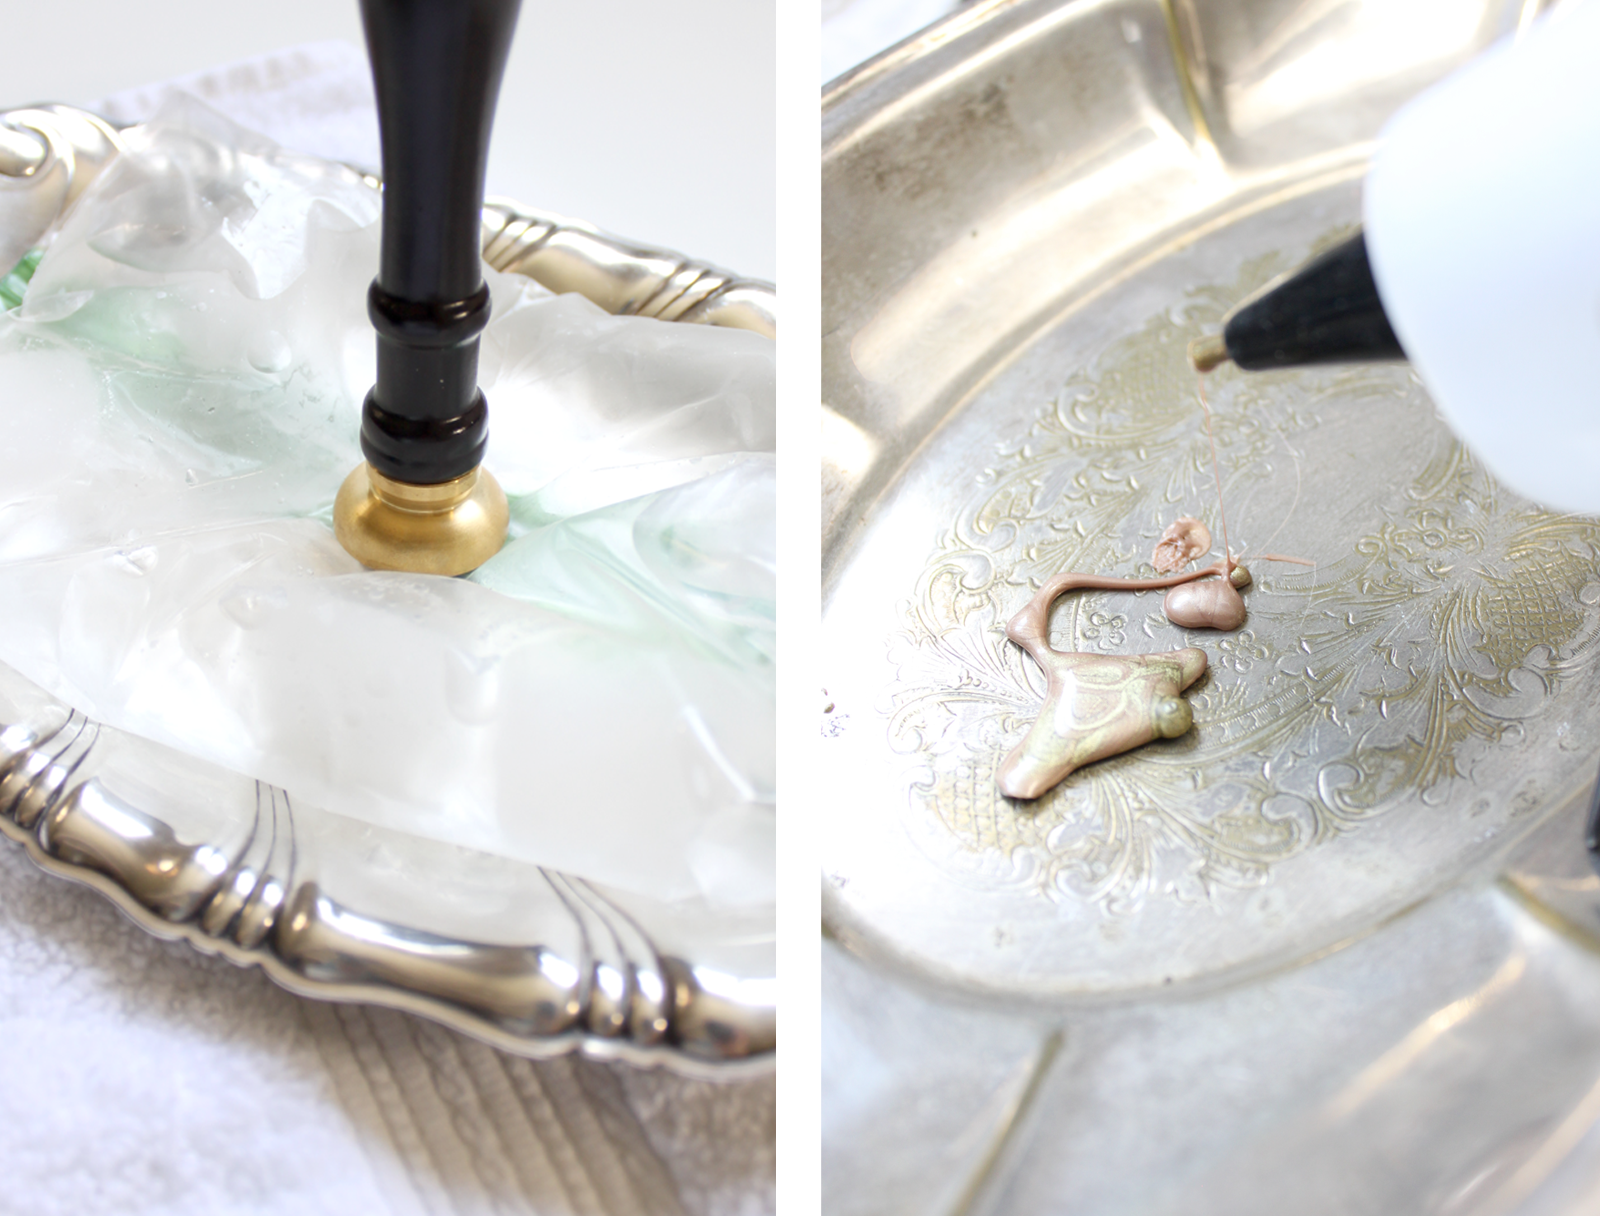 How to use wax seals: Use ice to chill your seal before applying it to the hot wax! Find out more tips and tricks for wax seals in this blog post by professional stationer, Katrina Crouch.  Blushed Design, Wedding Invitations and Fine Art Portraits